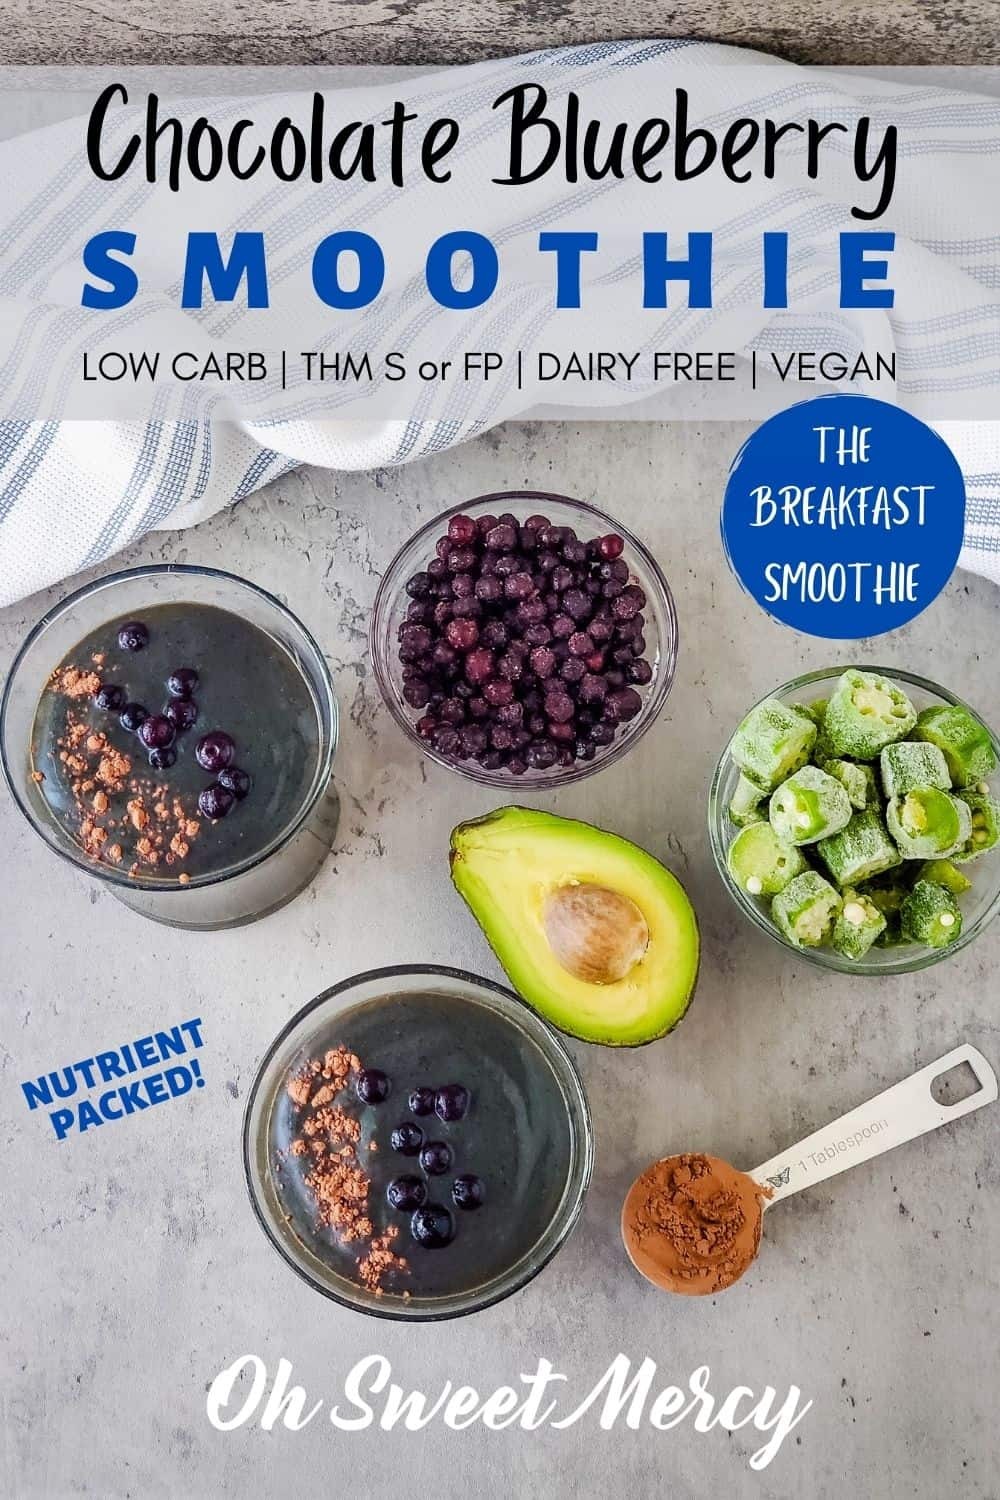 Start your day with a nutrient-packed smoothie that's totally THM friendly! Make it an S or FP, even an E with just a few tweaks. Featuring okra, blueberries, and cacao powder this filling chocolate blueberry smoothie nourishes your body and fuels your body well. #smoothies #thm #lowcarb #sugarfree #dairyfree #vegan @ohsweetmercy